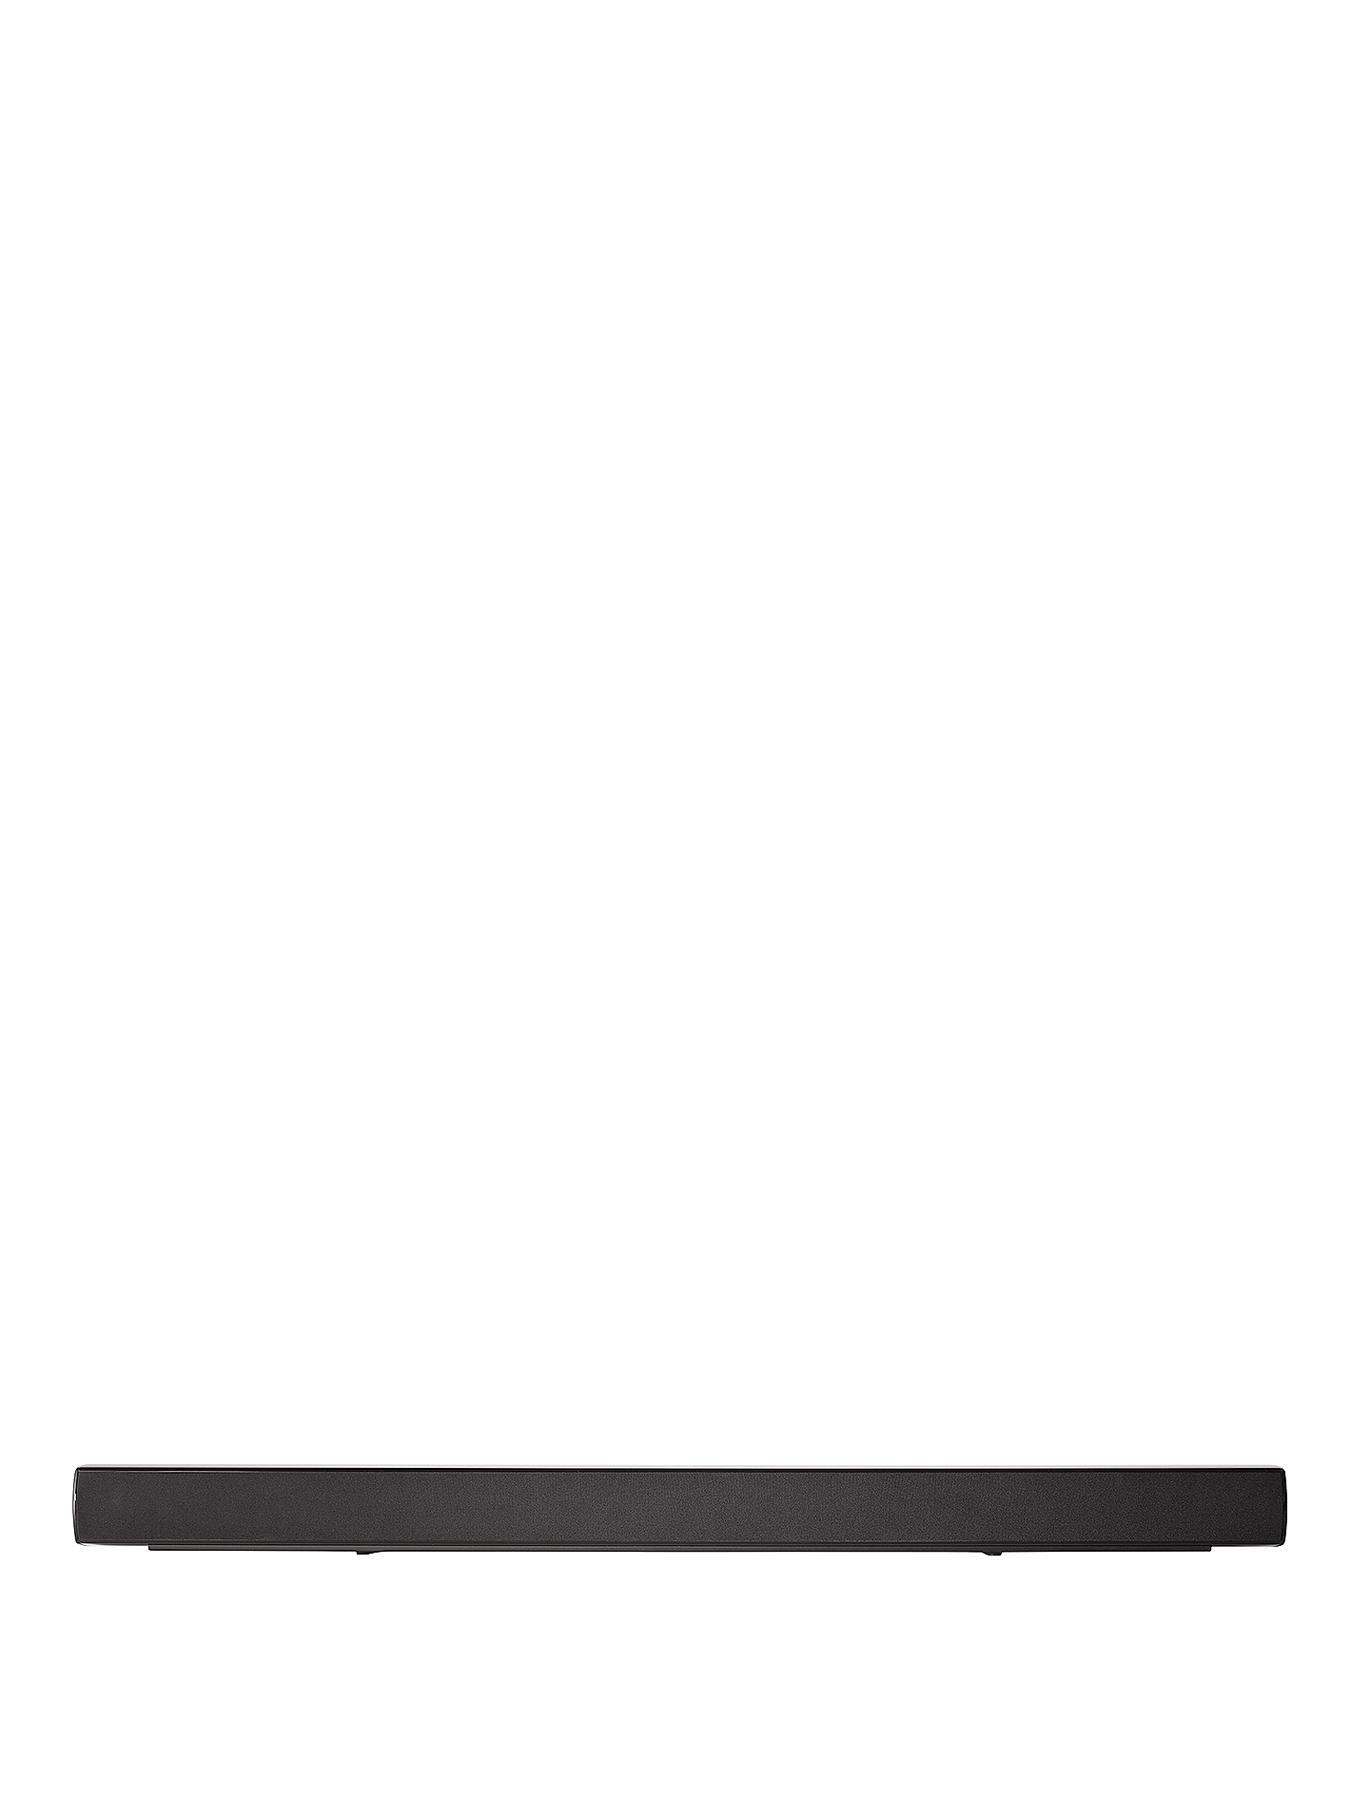 LG NB2540A 120-watt Bluetooth Soundbar